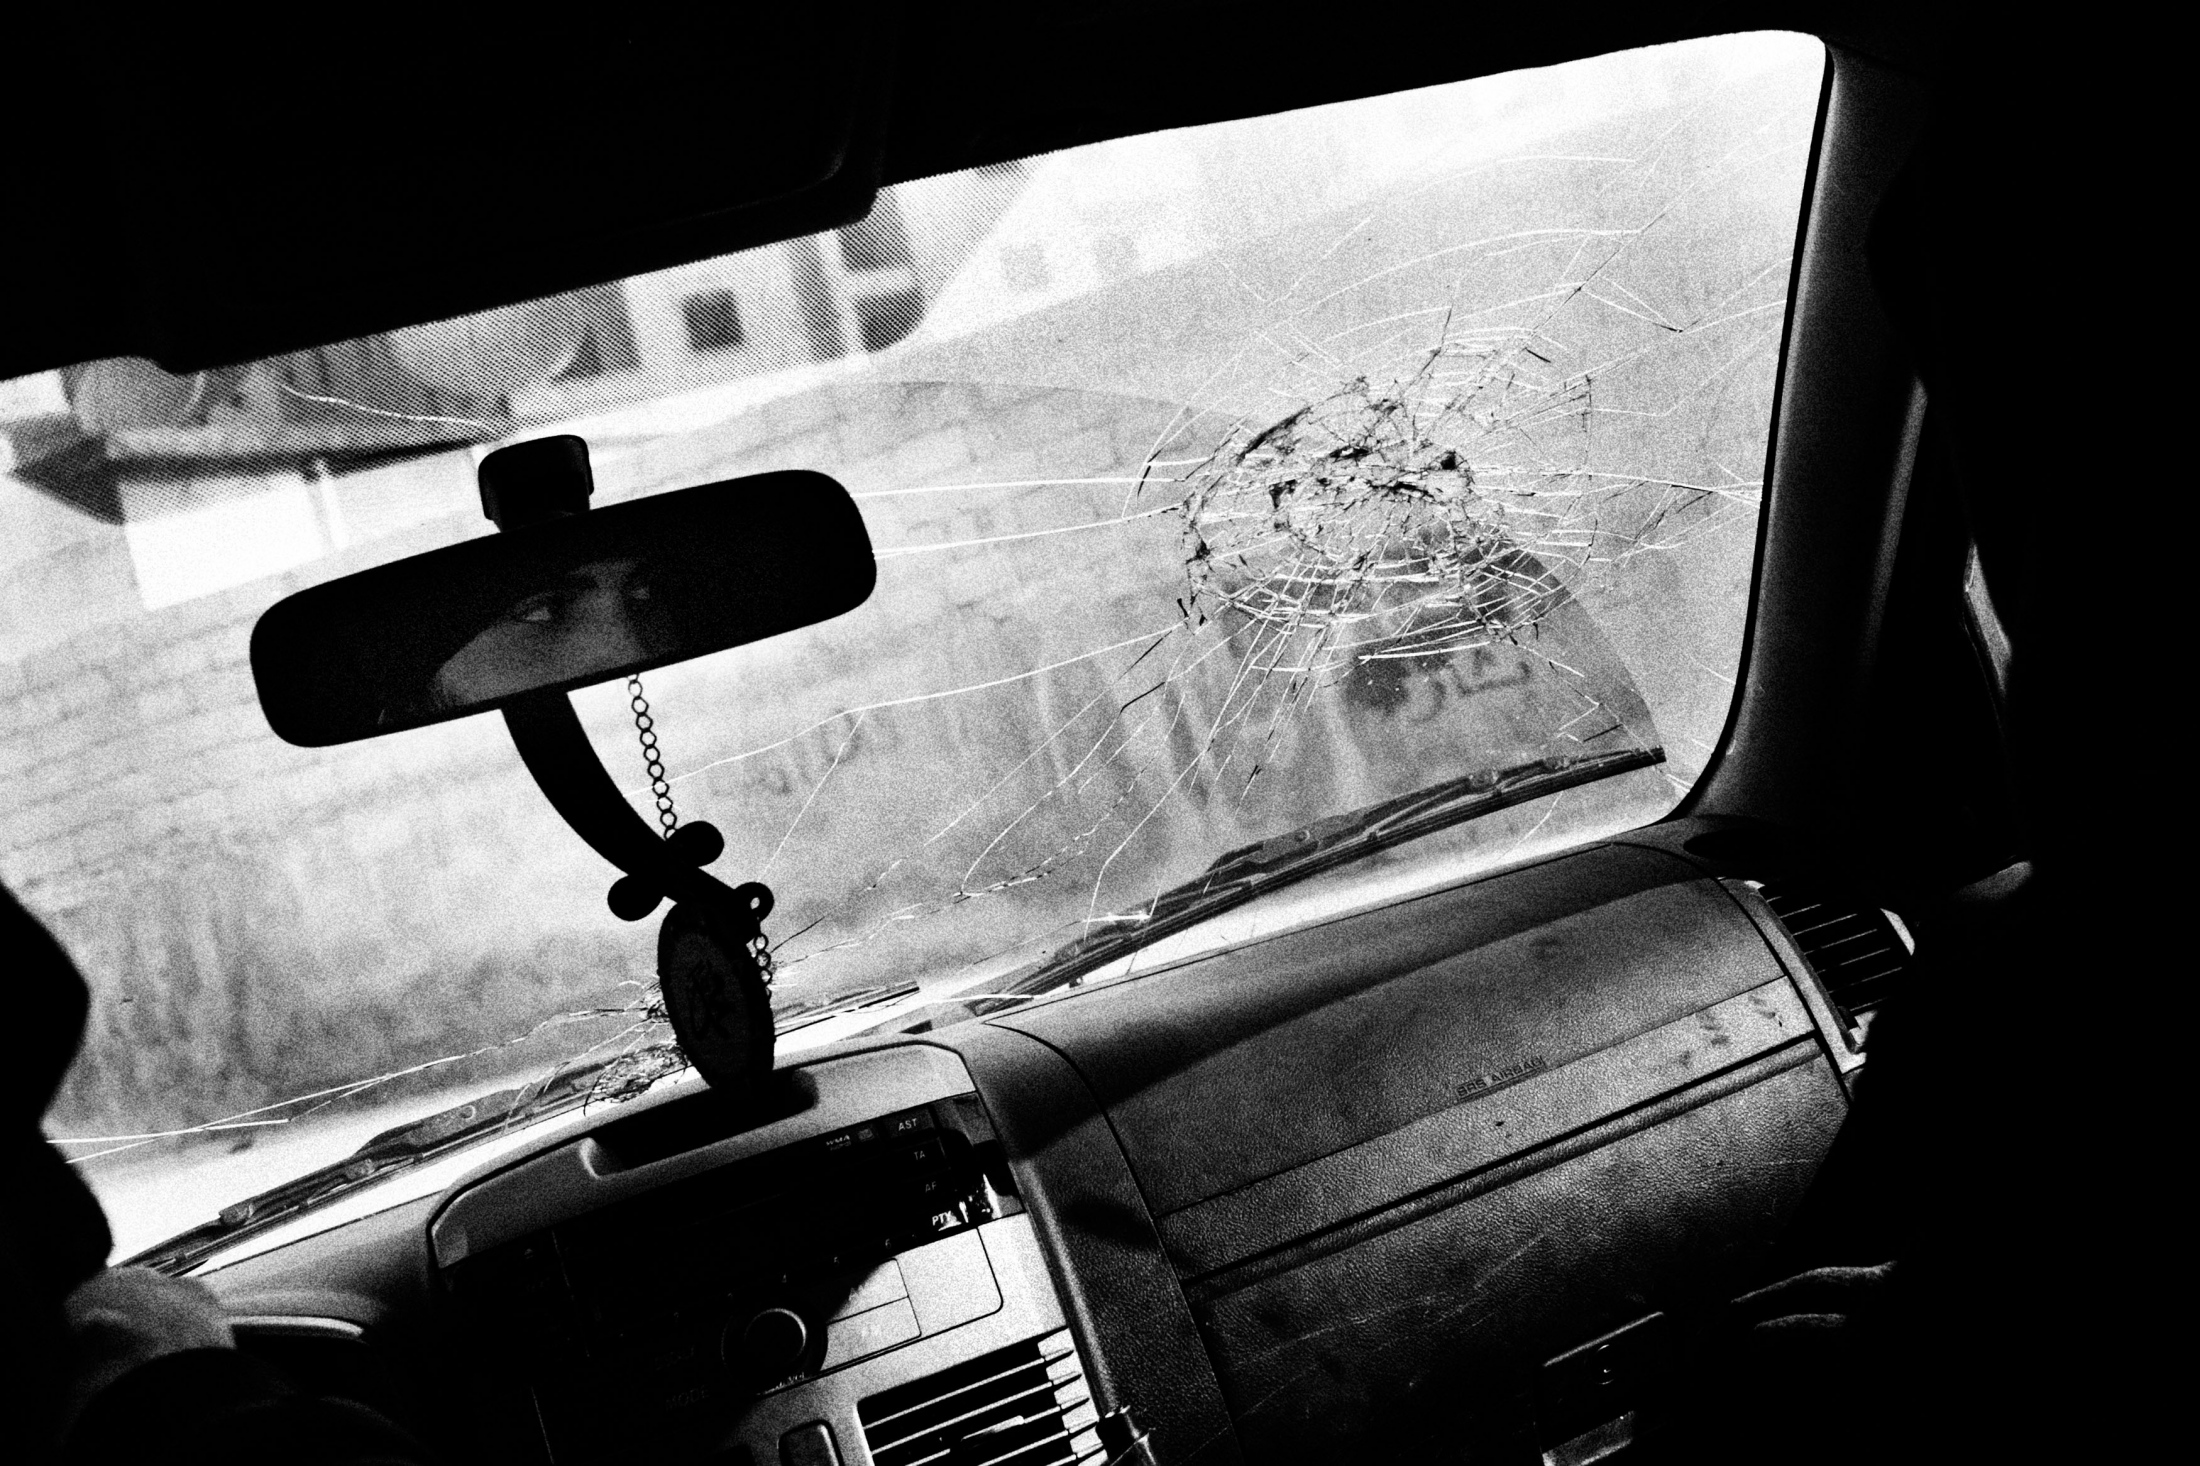 "The eyes of a man are seen through the mirror inside a car that was heavily shooted the day after the picture was taken in the neighborhood of Izaah in Aleppo, Syria, Wednesday, Jan. 3, 2013. The United Nations estimated that more than 400,000 people have been killed in Syria's 60-month-old uprising against authoritarian rule, a toll one-third higher than what anti-regime activists had counted. The U.N. human rights chief called the toll ""truly shocking."" Copyright: Spanish Photojournalist Andoni Lubaki"